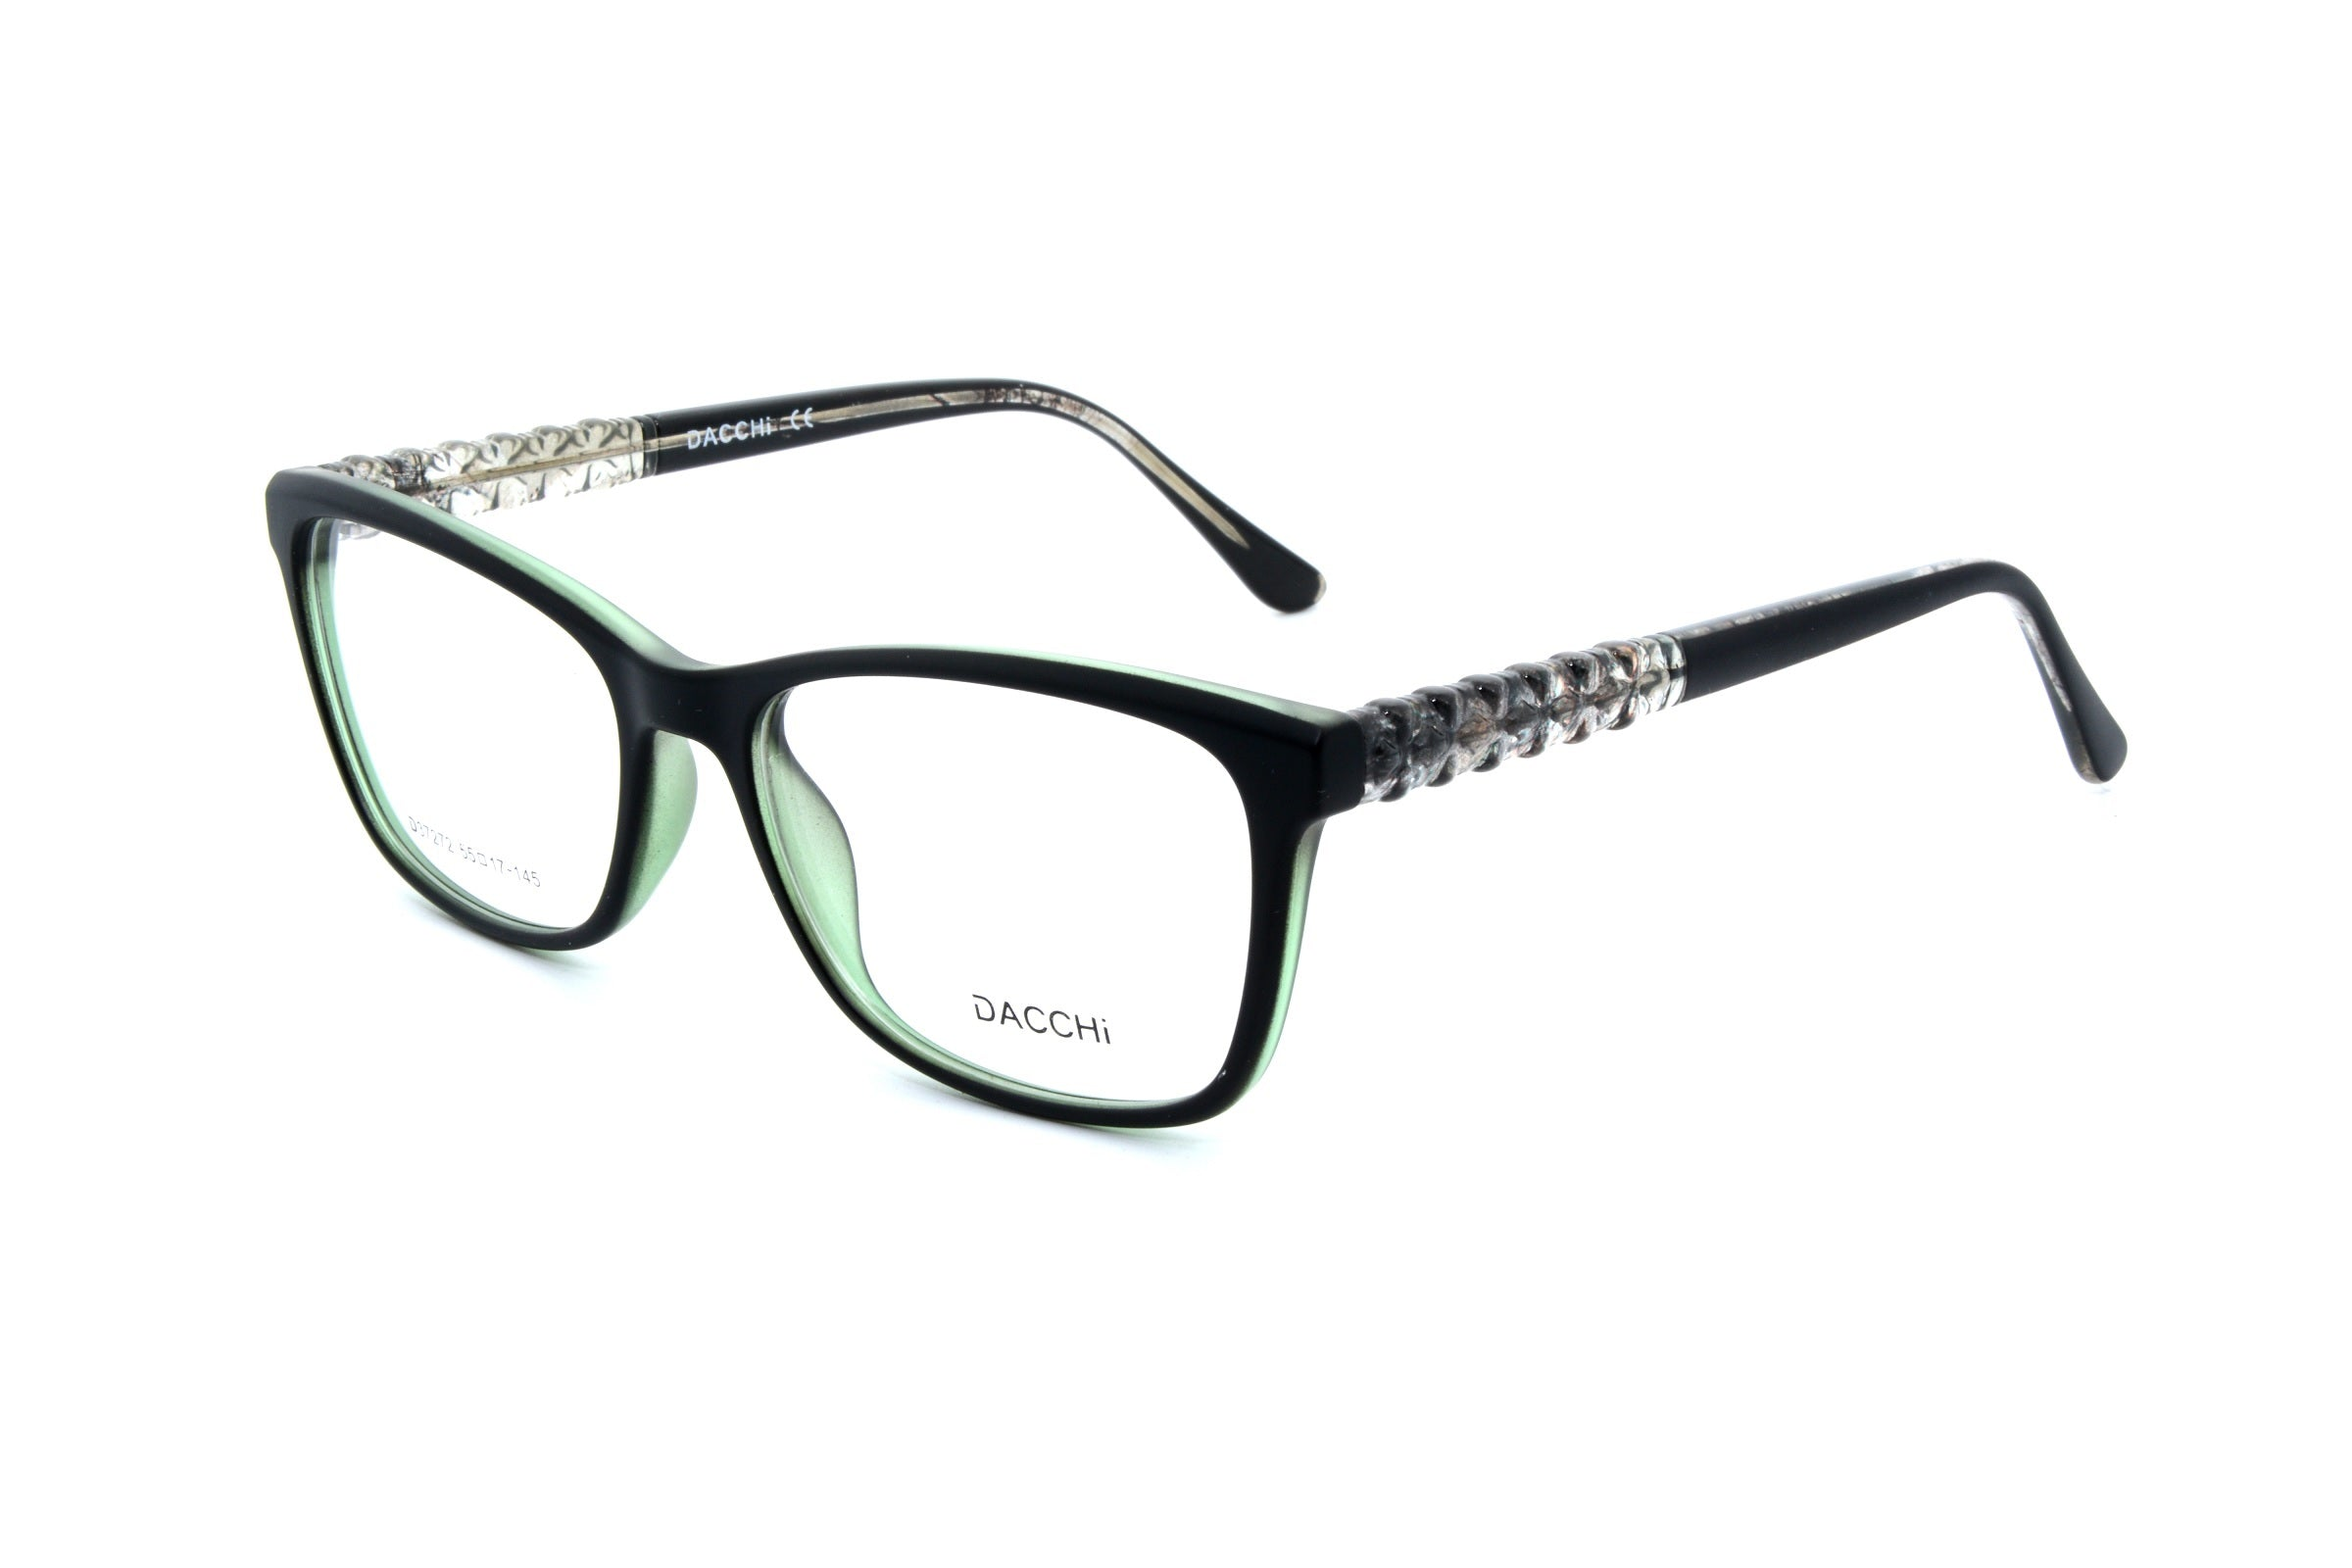 Dacchi eyewear 37272, C3 - Optics Trading